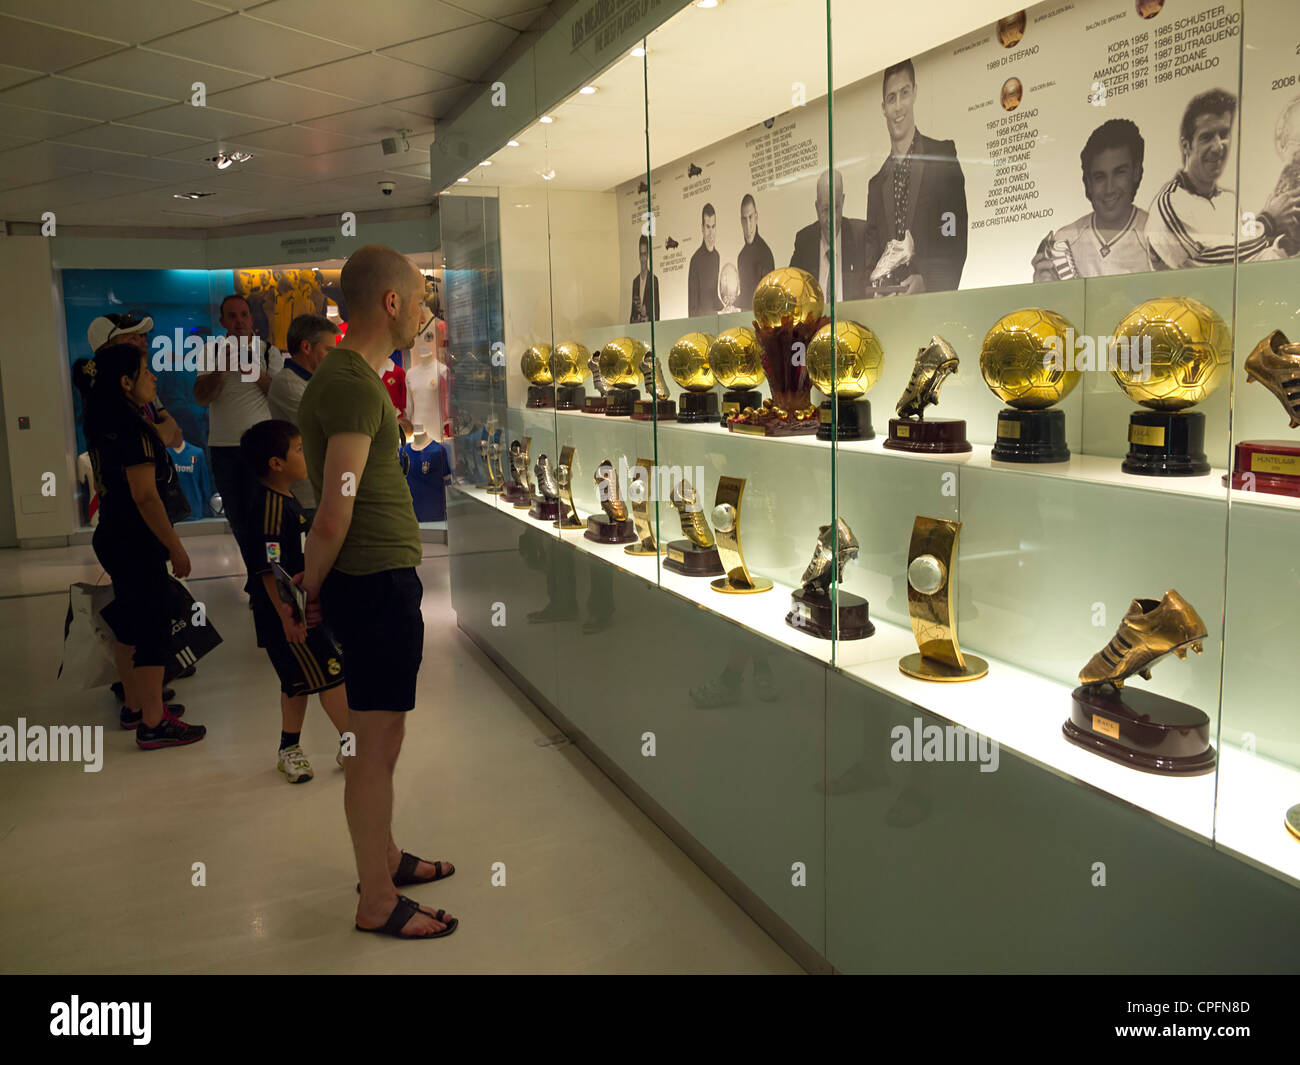 Museo Real Madrid.Real Madrid Museum Stock Photos Real Madrid Museum Stock Images